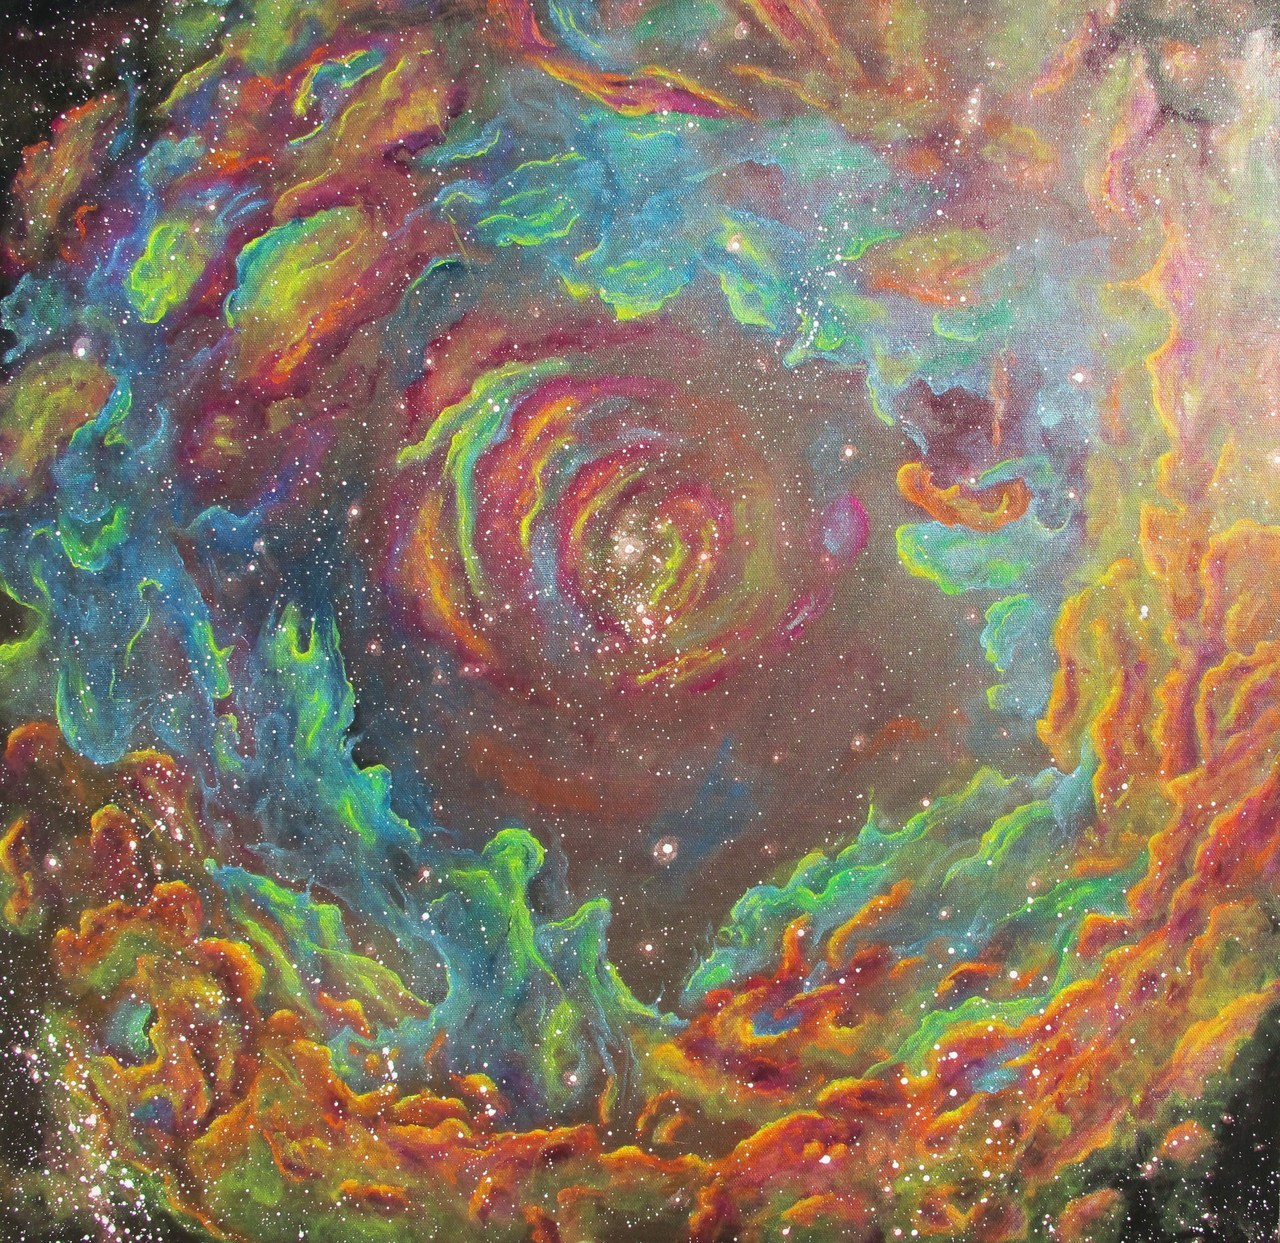 isis-oh-isis:  Oil Spill Nebula- 24 x 24- Acrylic on canvas